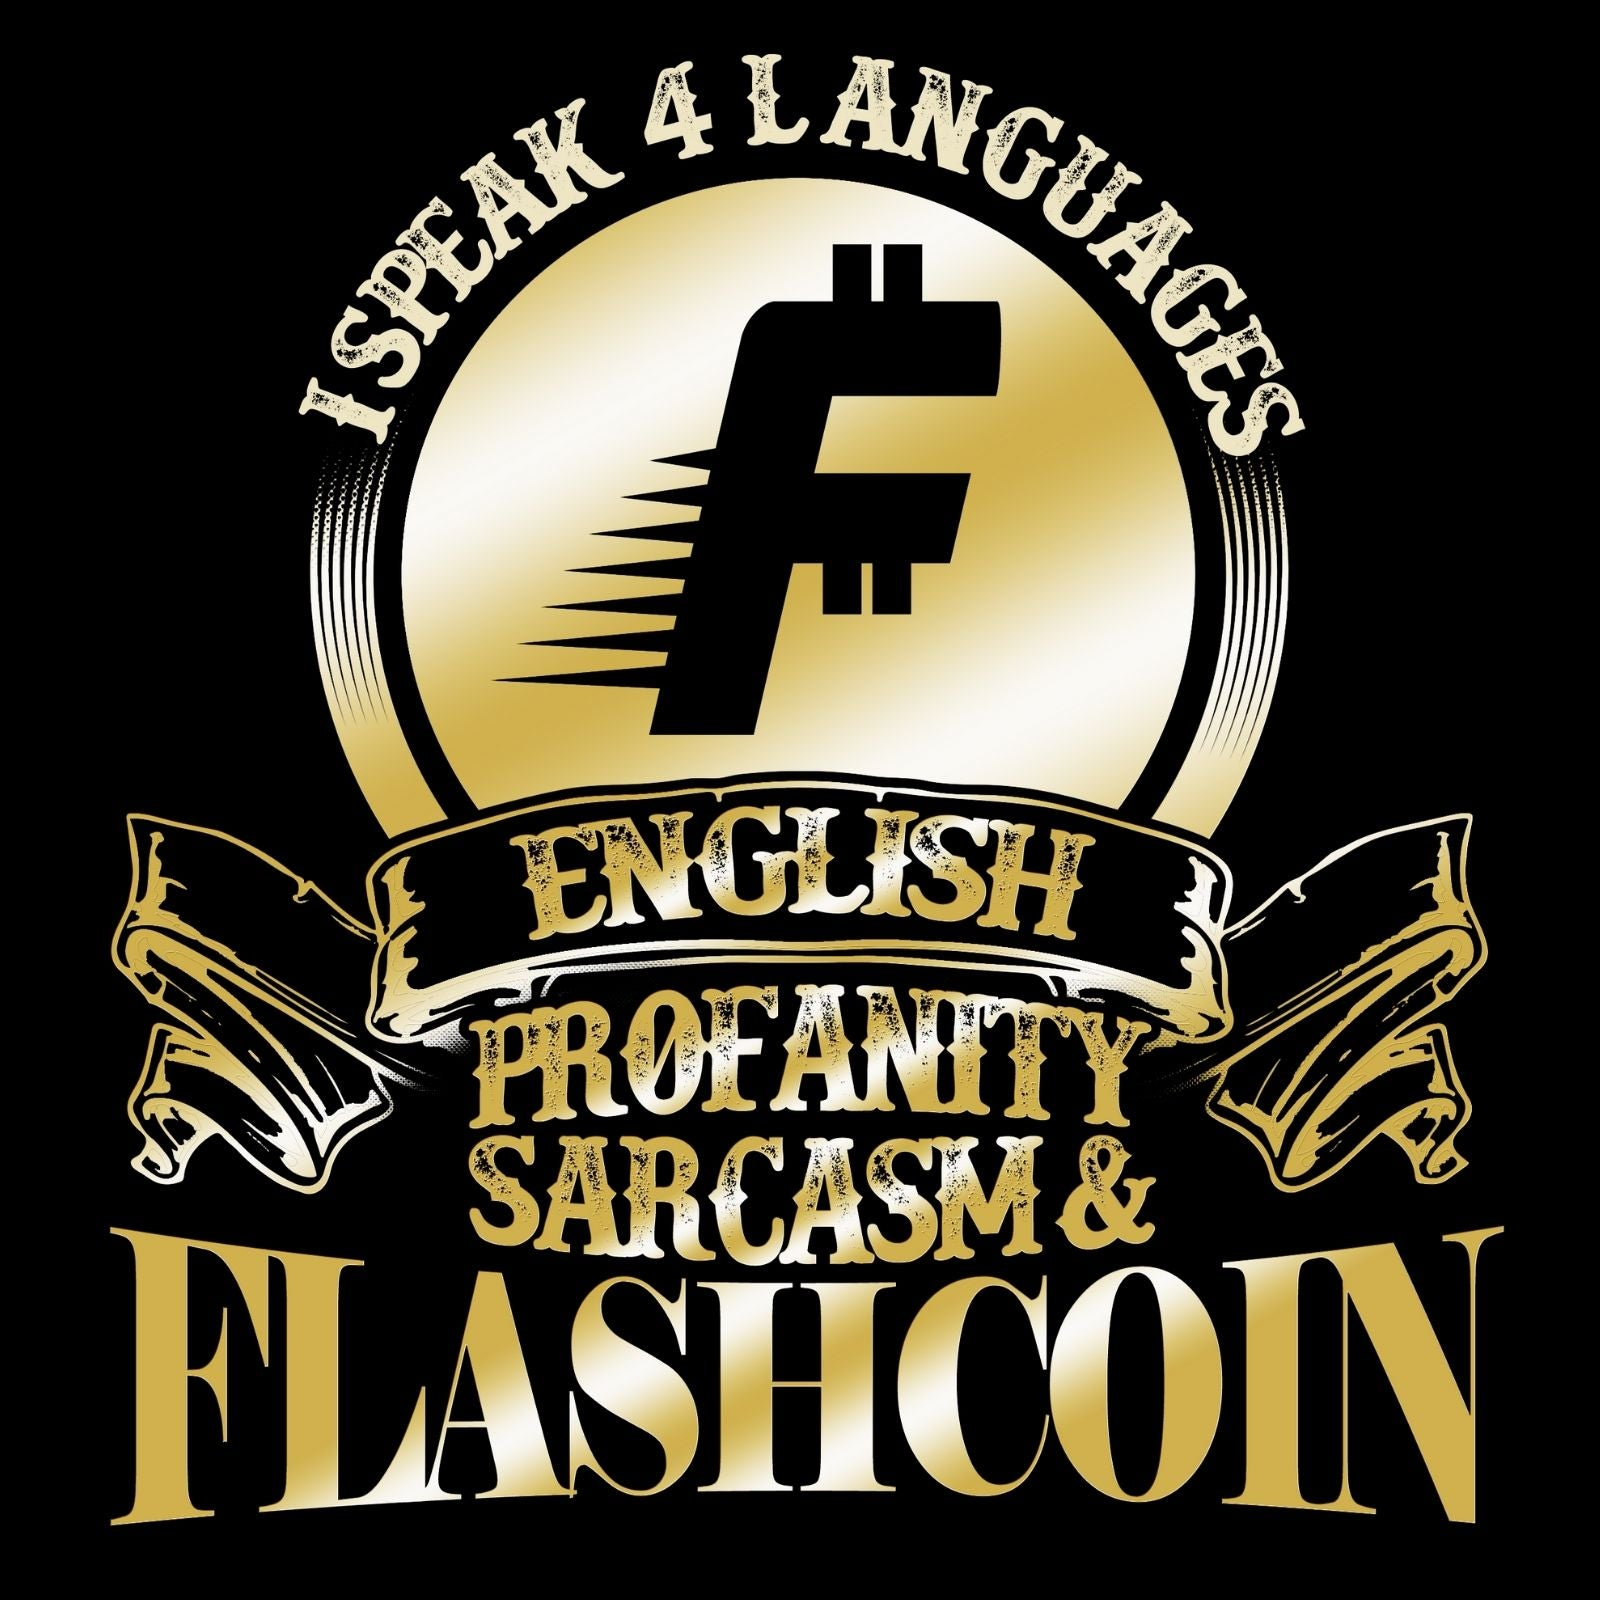 I Speak 4 Languages Flashcoin - Bastard Graphics